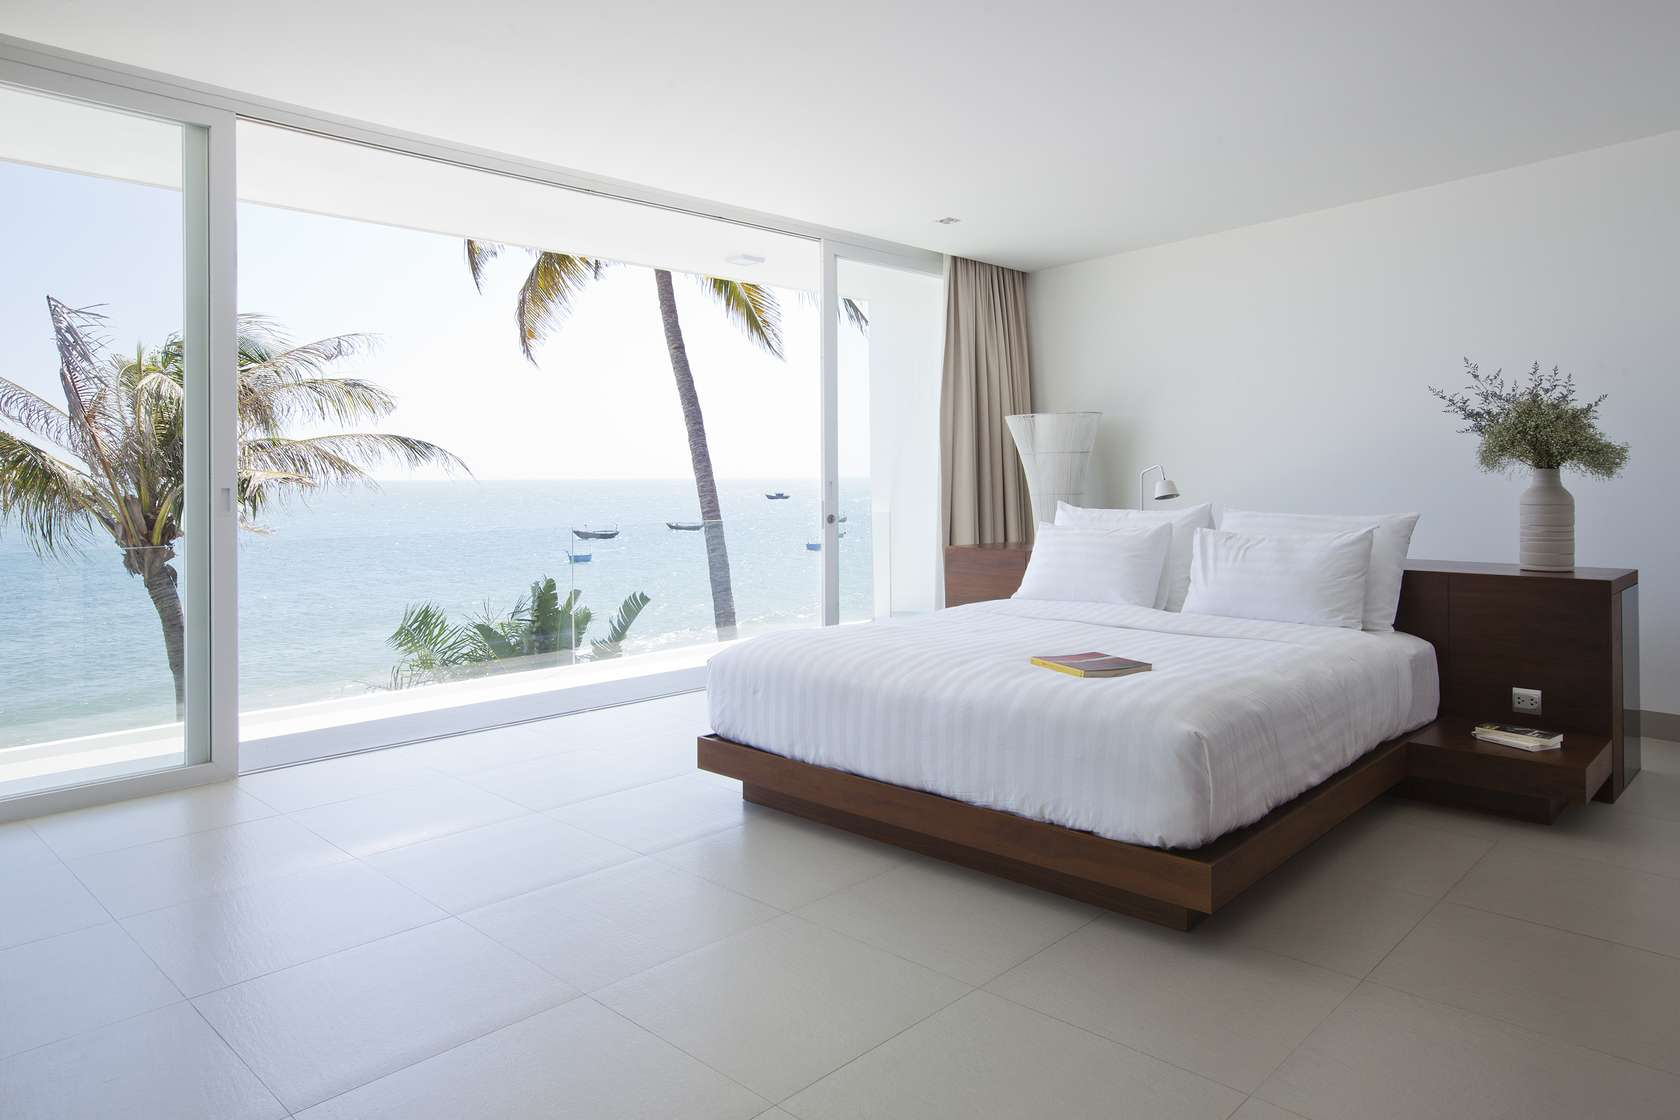 Private beach villas offer spectacular ocean views and for Best windows in the world